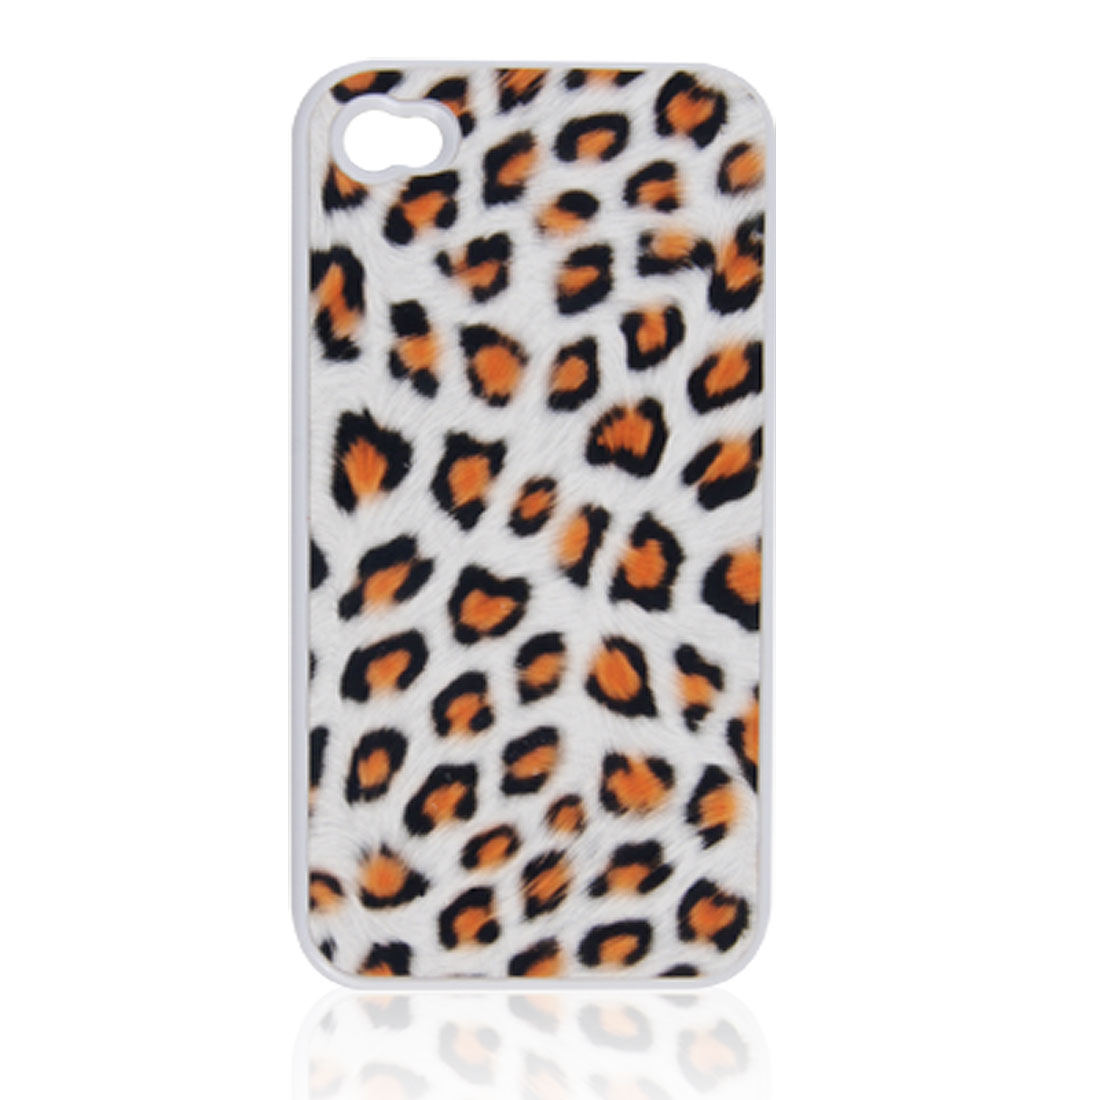 Leopard Print Faux Leather Coated Plastic Back Case for iPhone 4 4G 4S